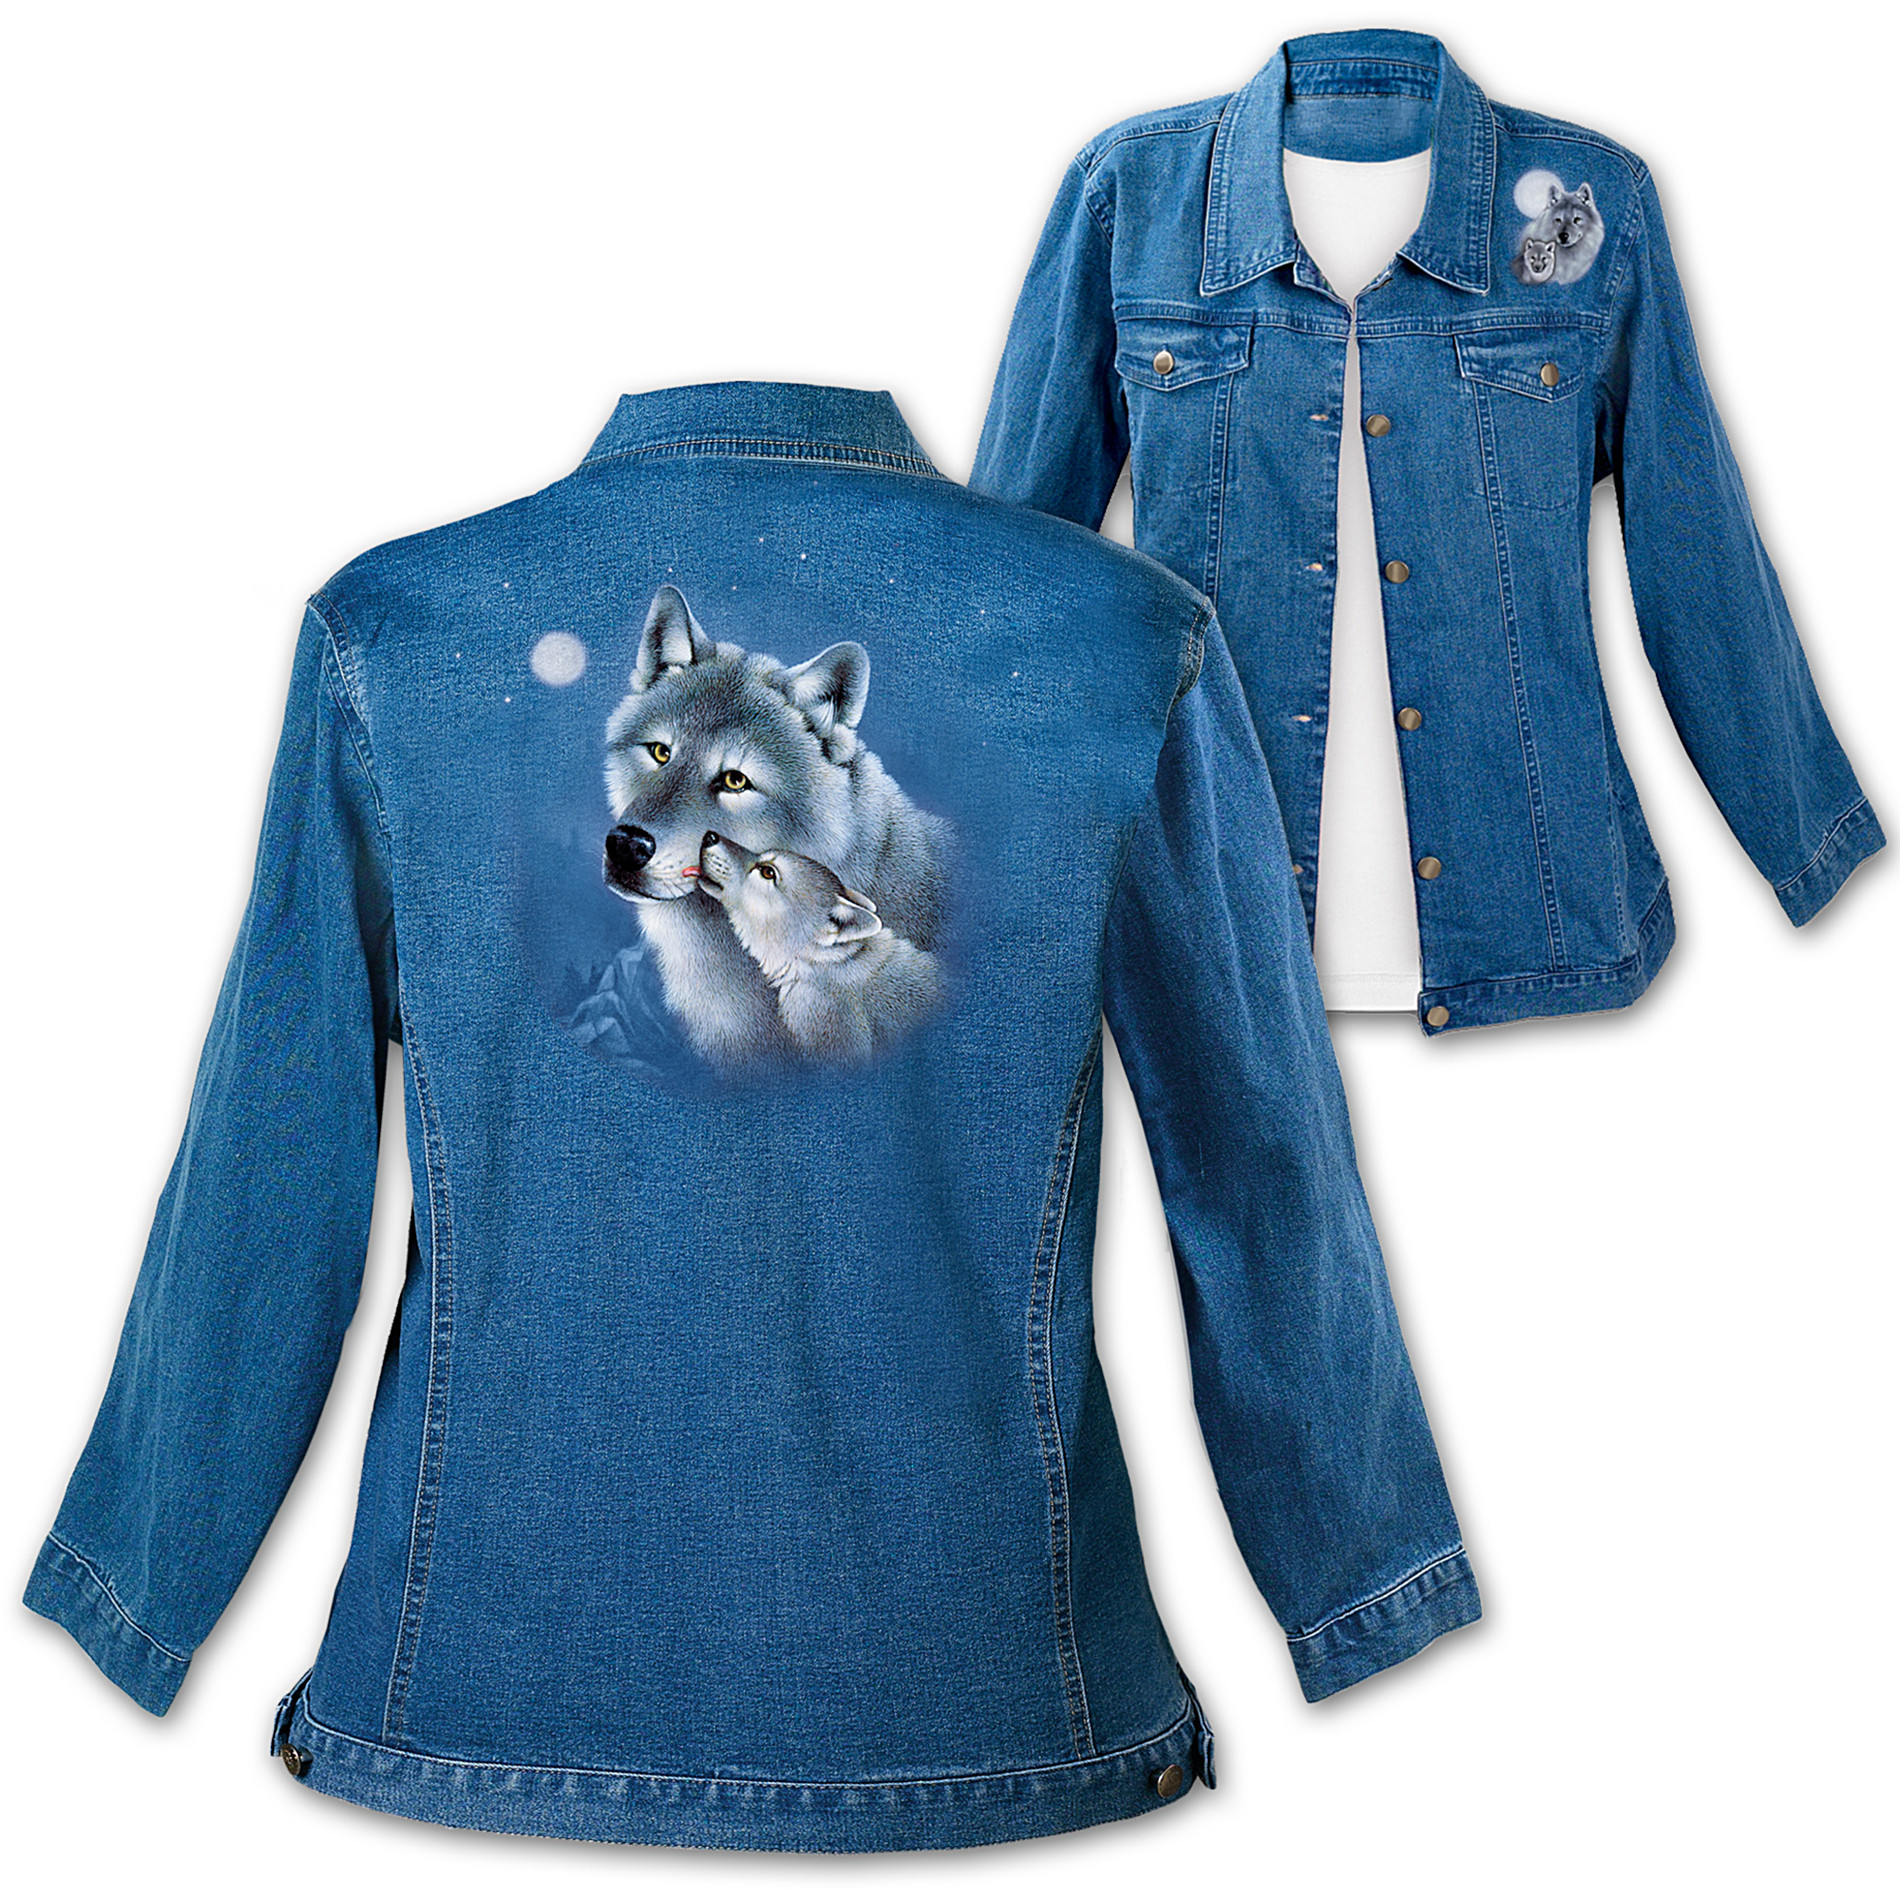 The Bradford Exchange Moments In The Wilderness: Women's Denim Jacket With Wolf Art at Sears.com